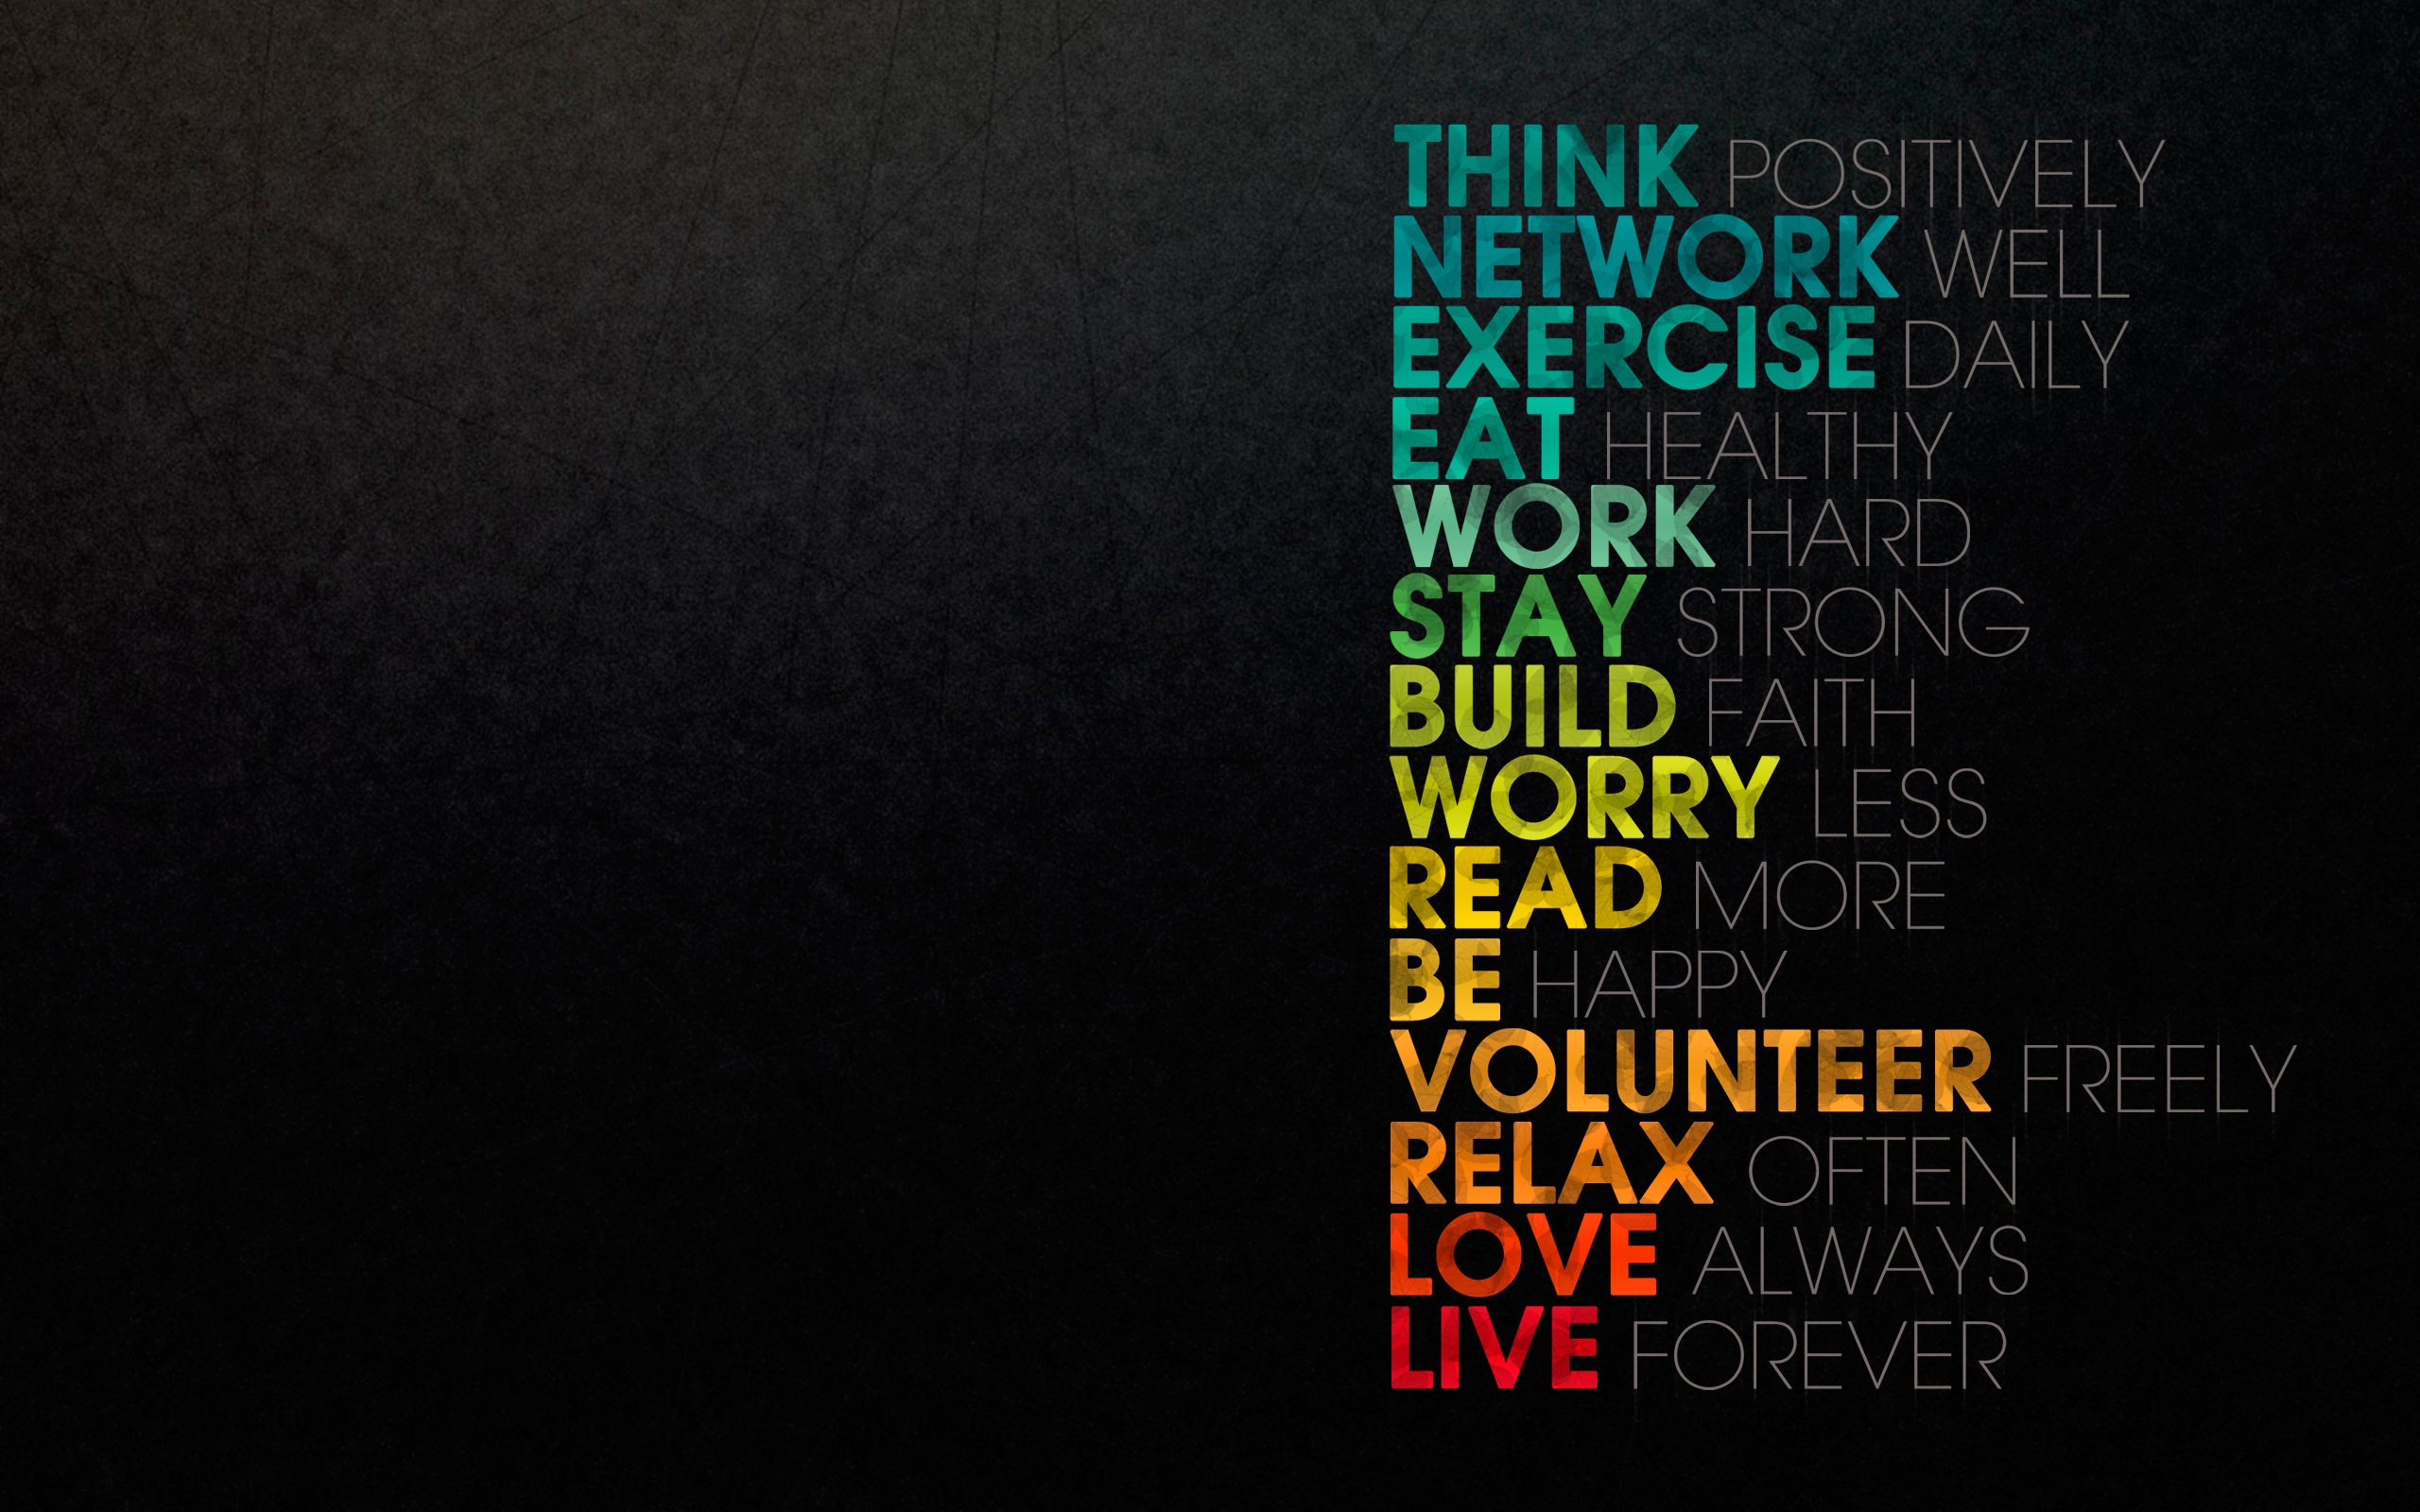 Inspirational Wallpaper For Android